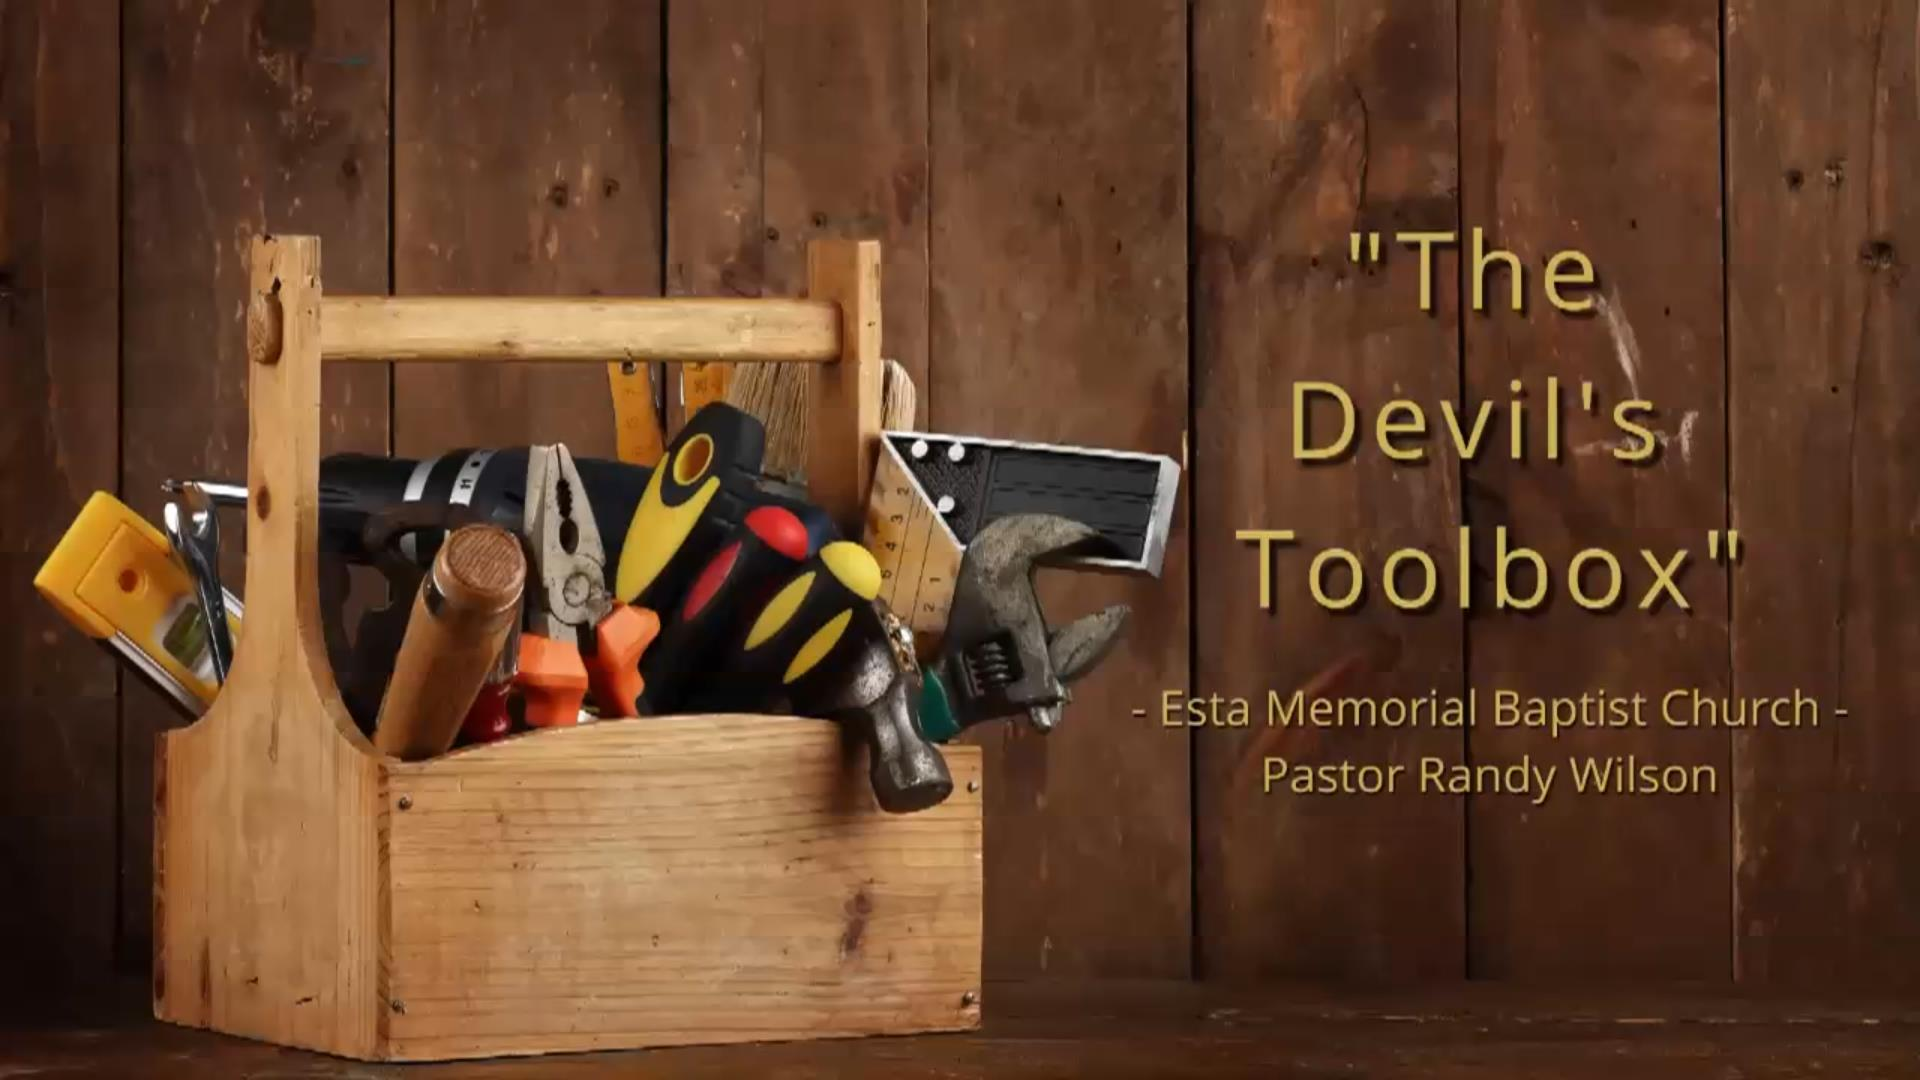 The Devil's Toolbox